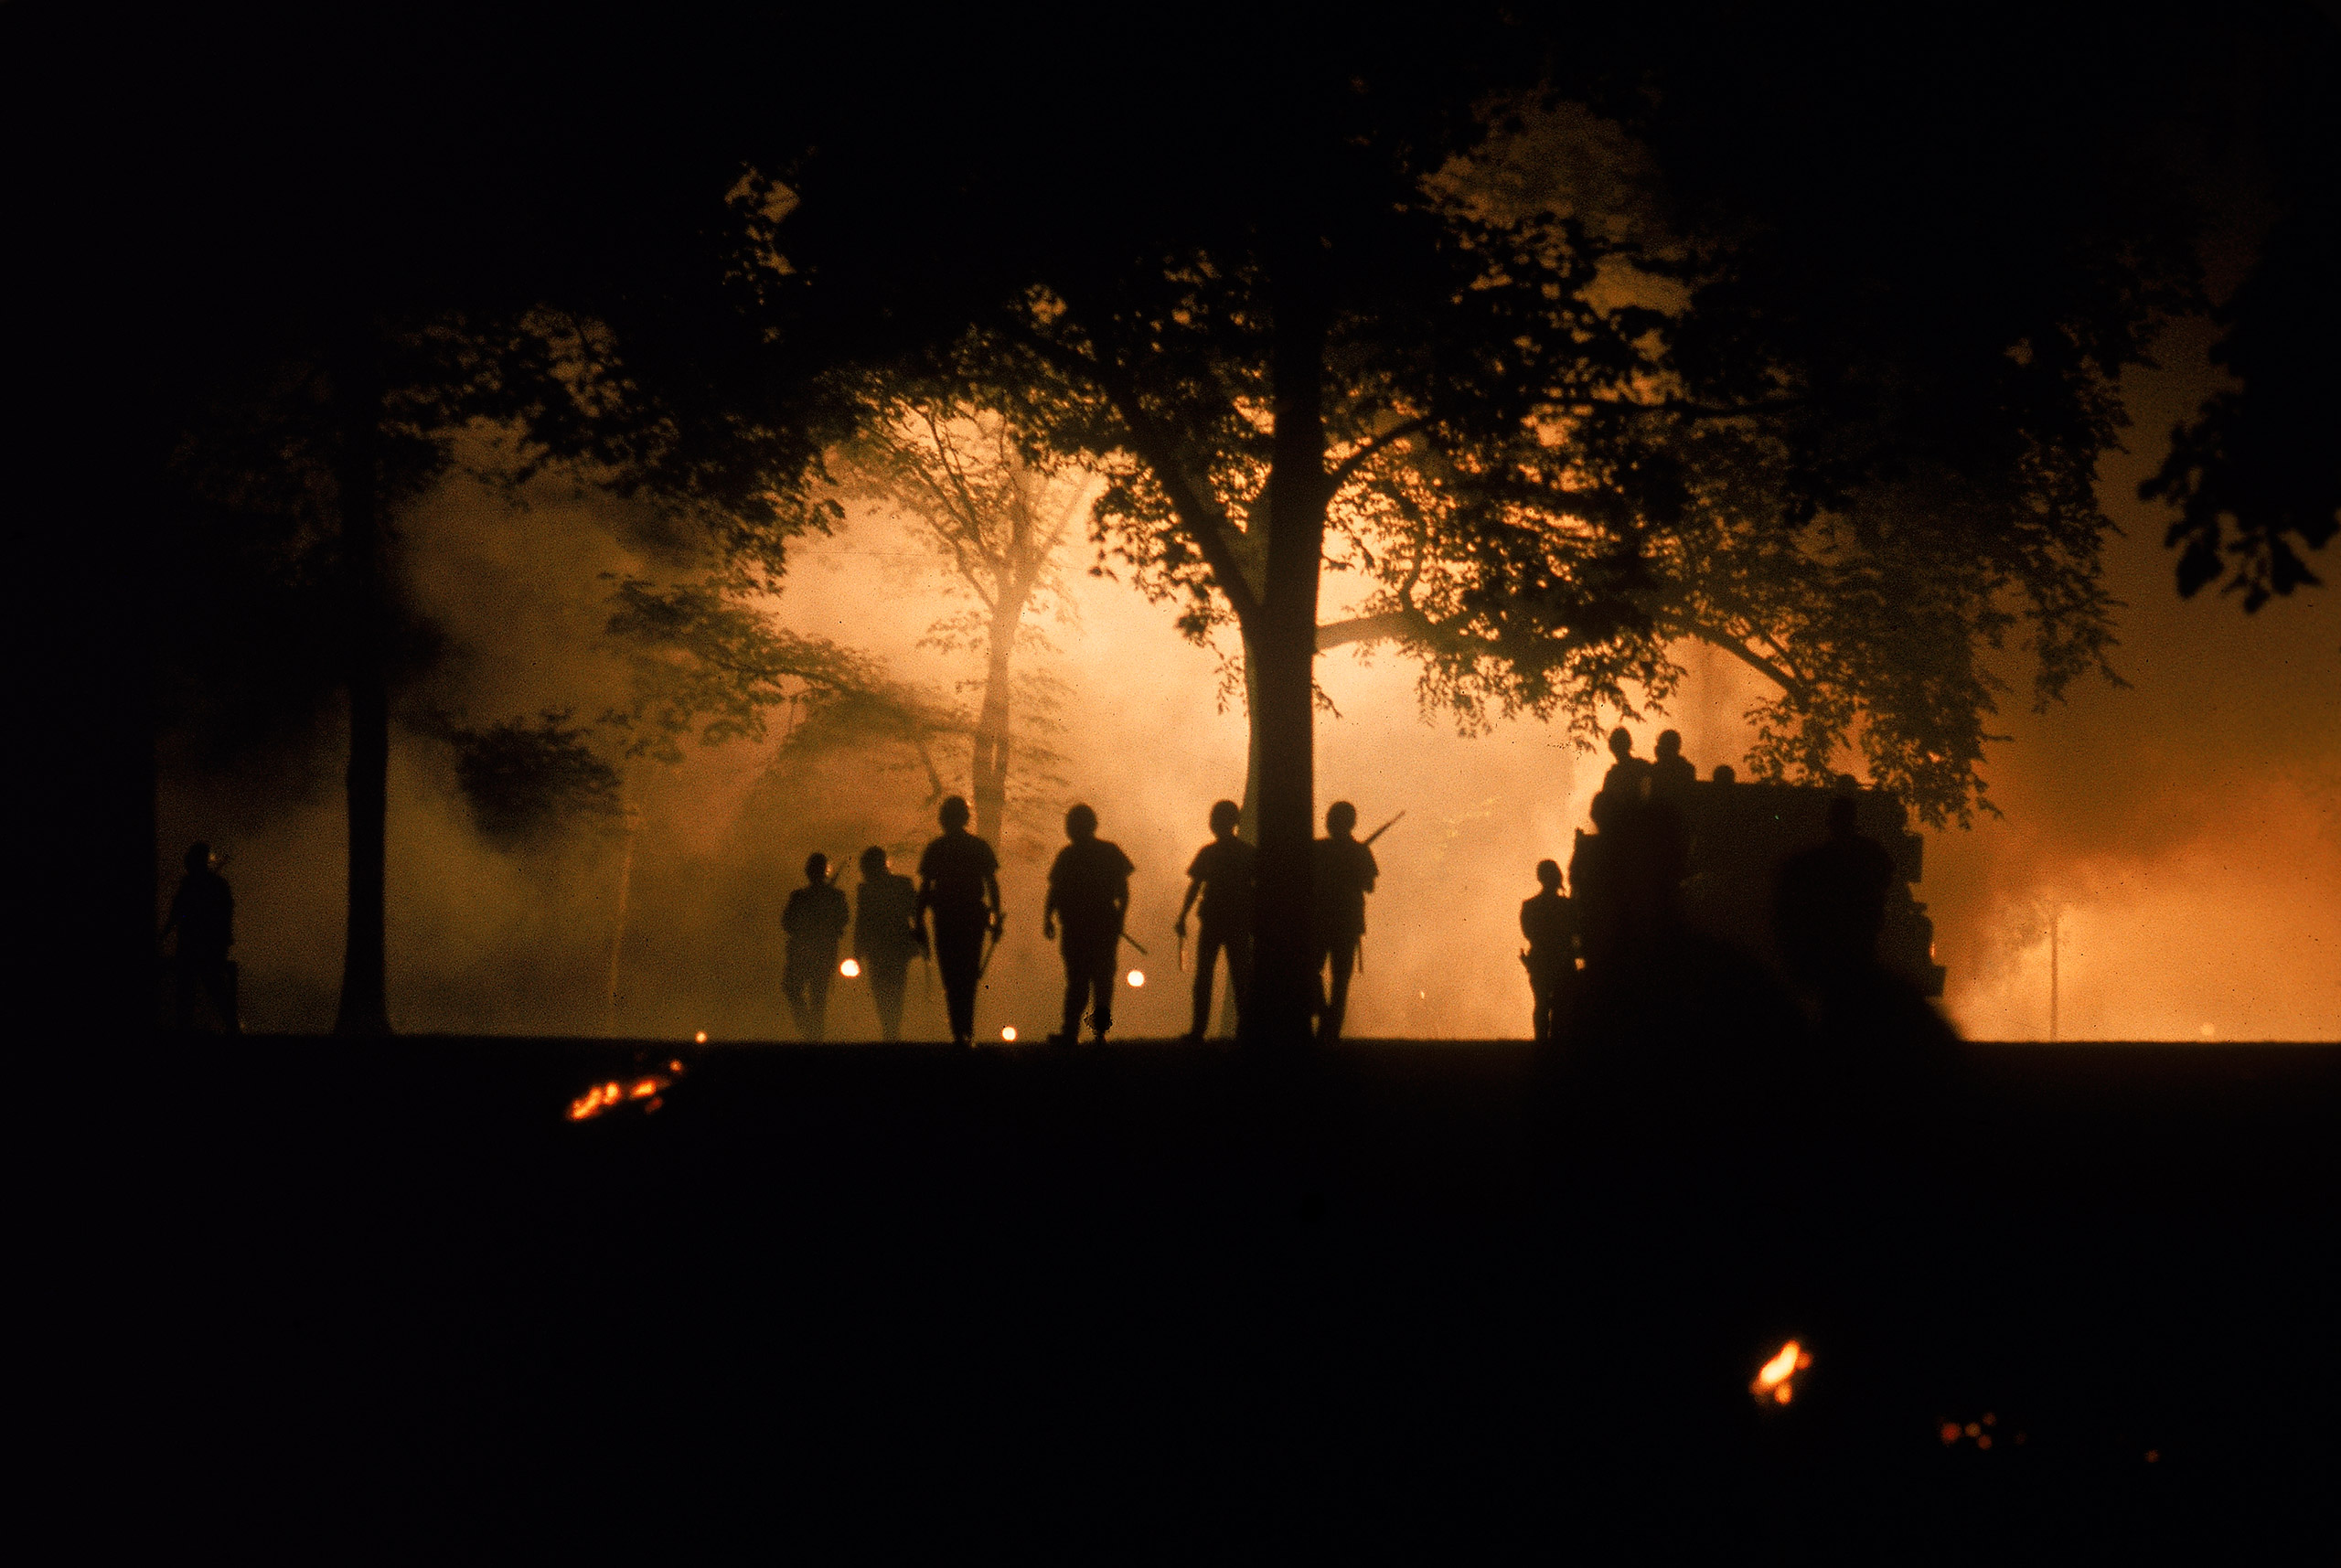 Caption from TIME. Police wearing masks advance through tear gas clouds in Chicago's Lincoln Park.